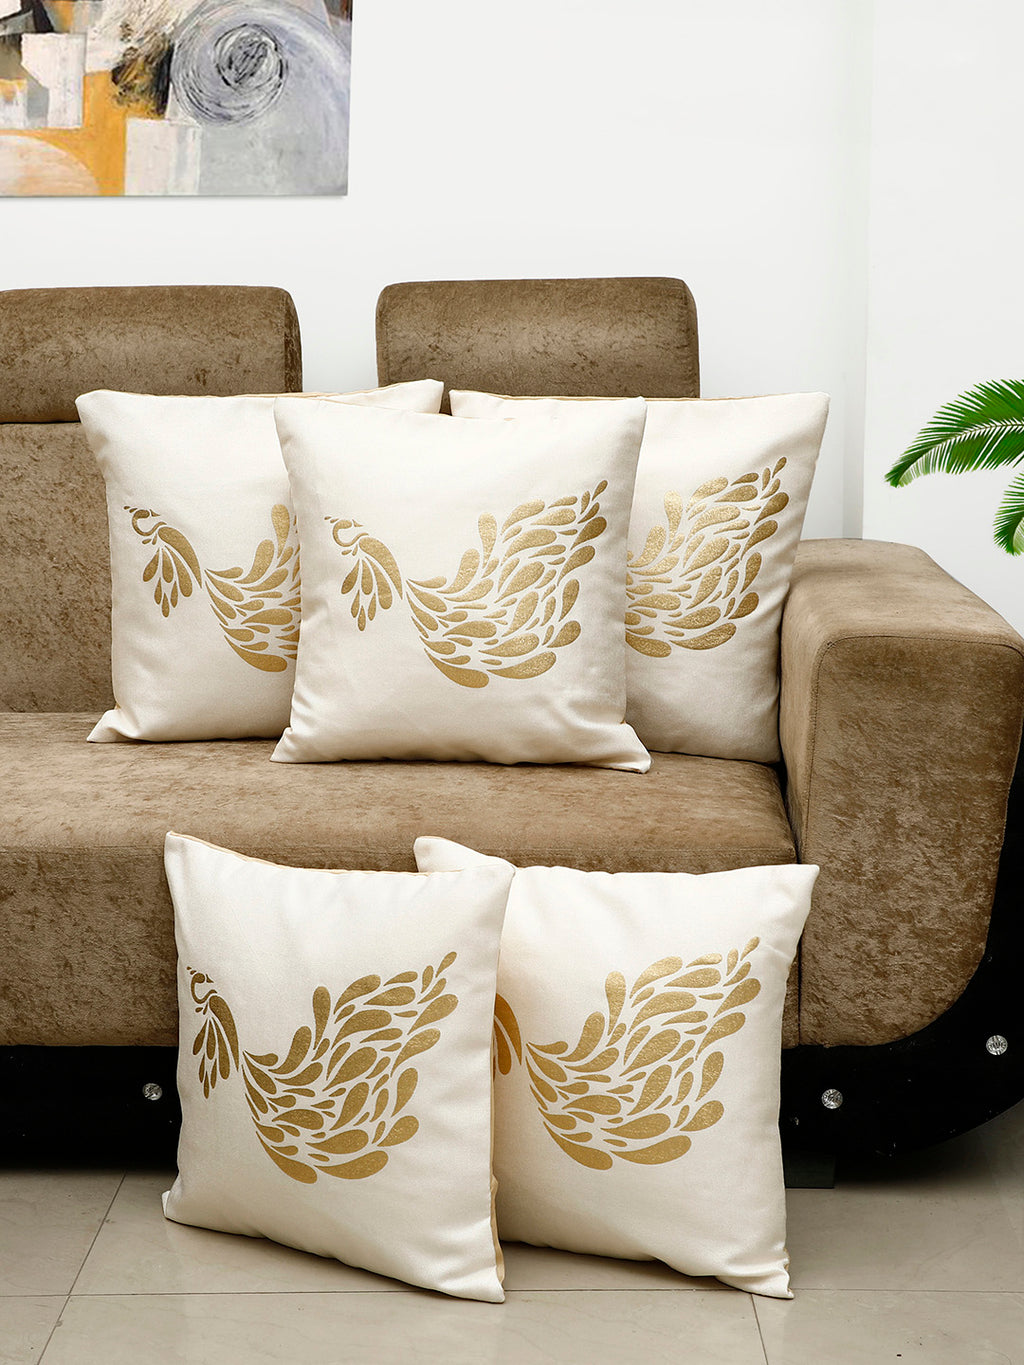 Detec™ Hosta Beige Golden Peacock Printed 16 x 16 inches Cushion Cover (Set of 5)